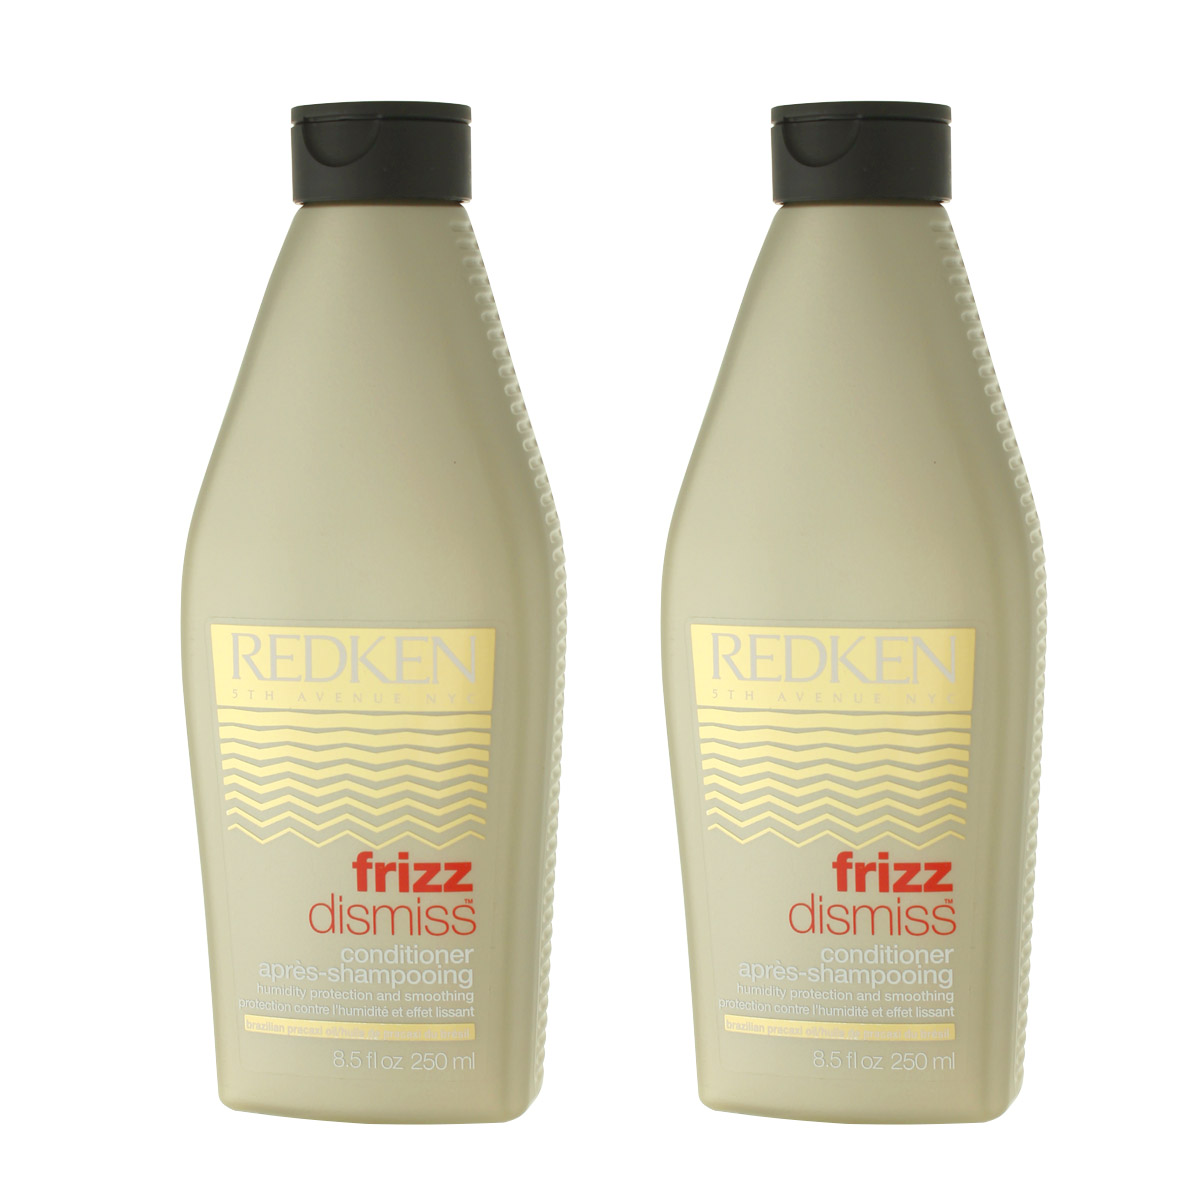 Redken Frizz Dismiss Conditioner 2 x 250 ml